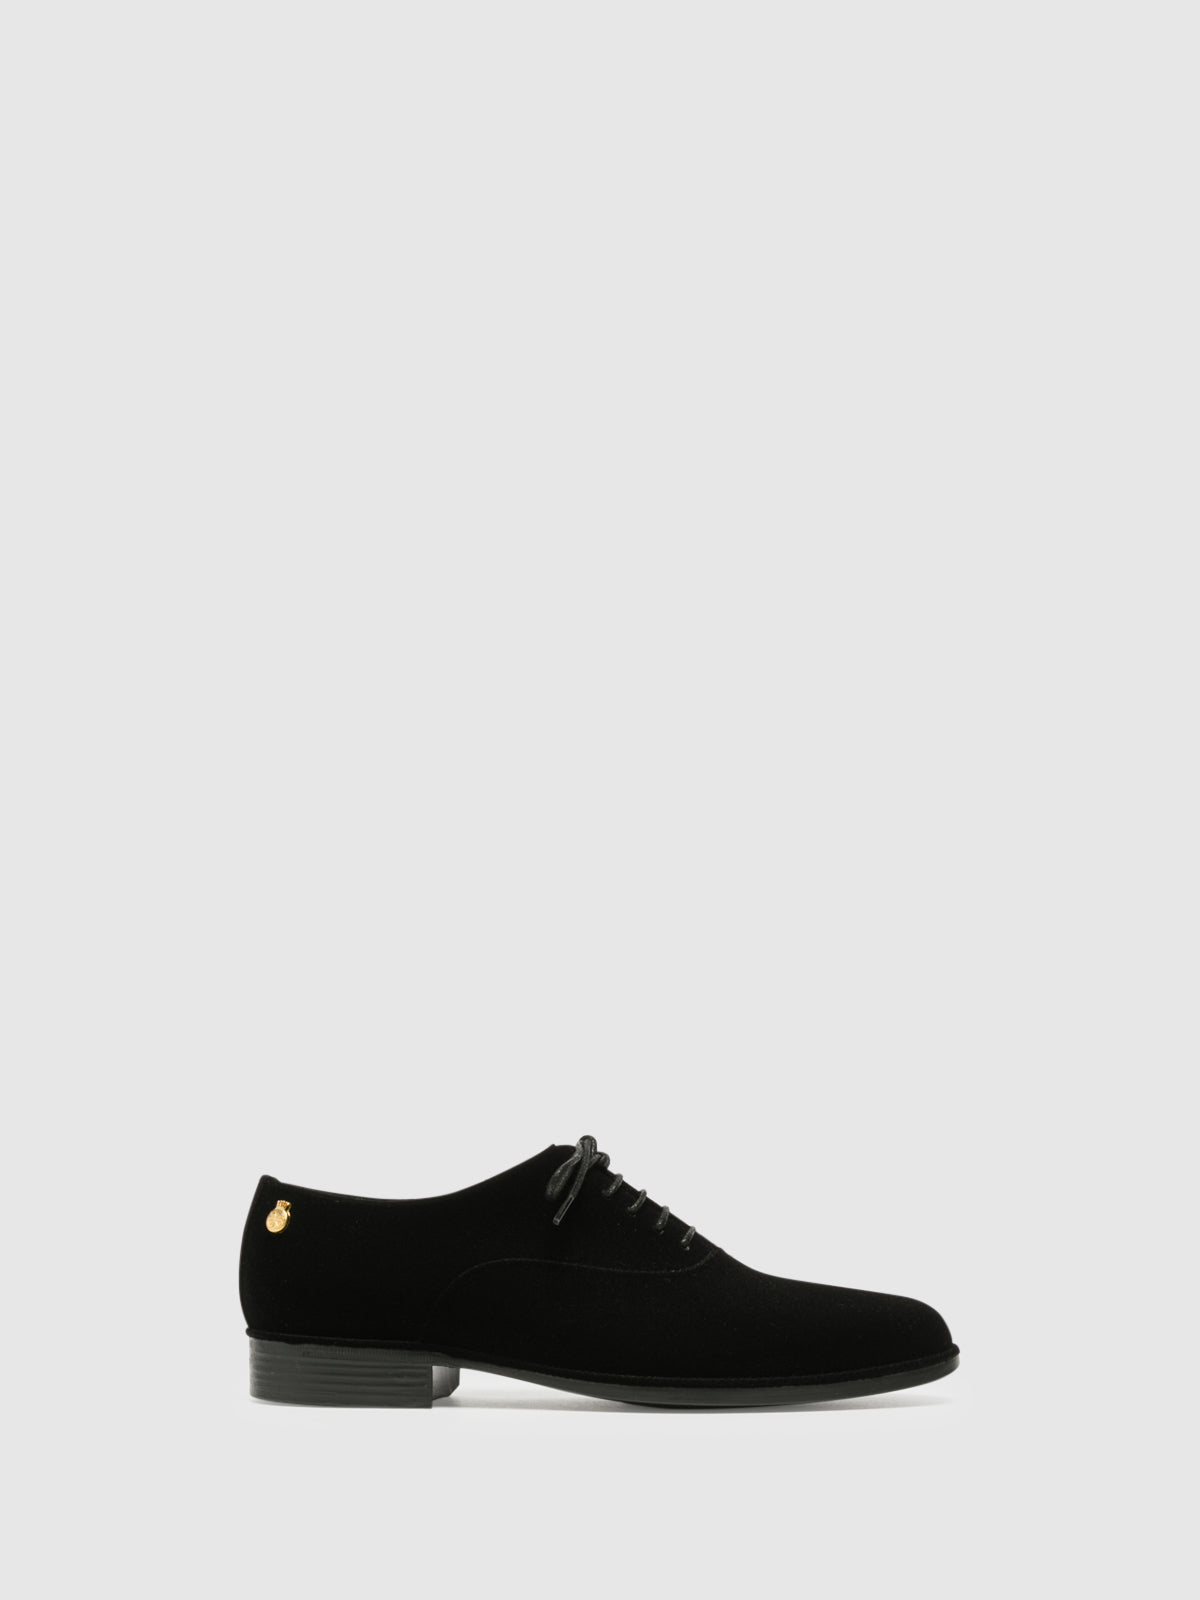 Lemon Jelly Zapatos Oxford en color Negro